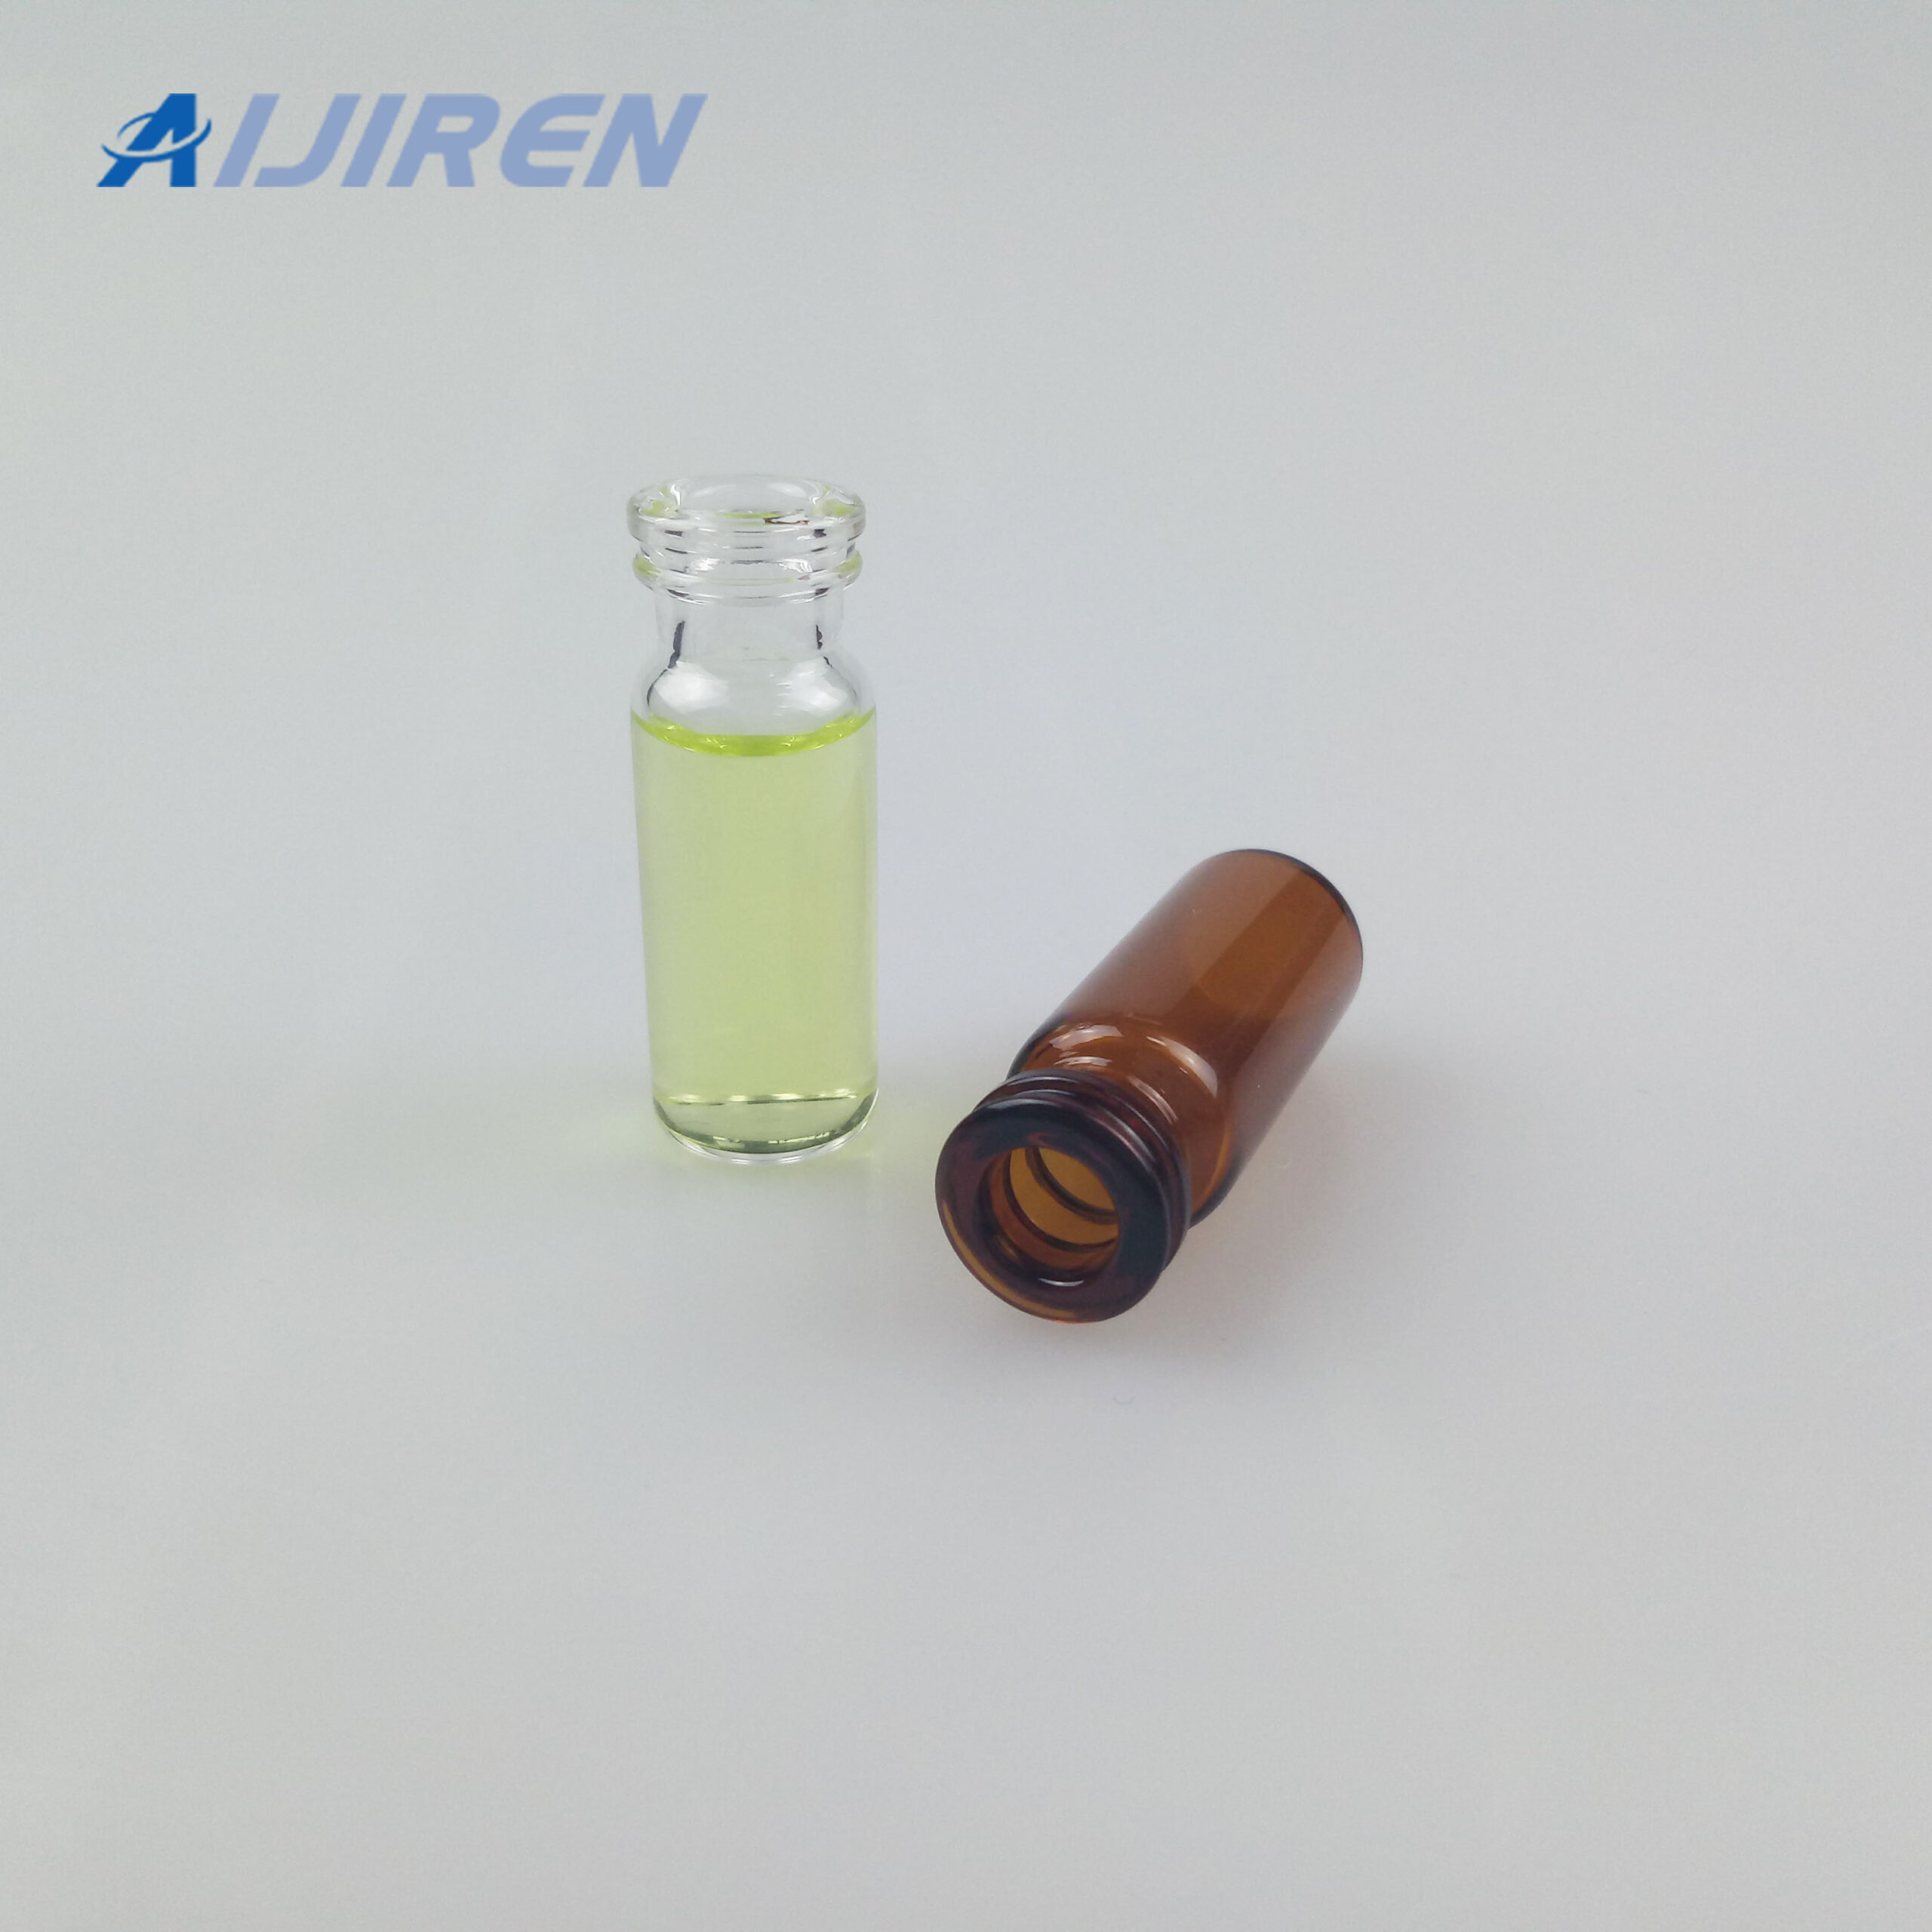 20ml headspace vialAmber and Clear Glass Vial with Label Area